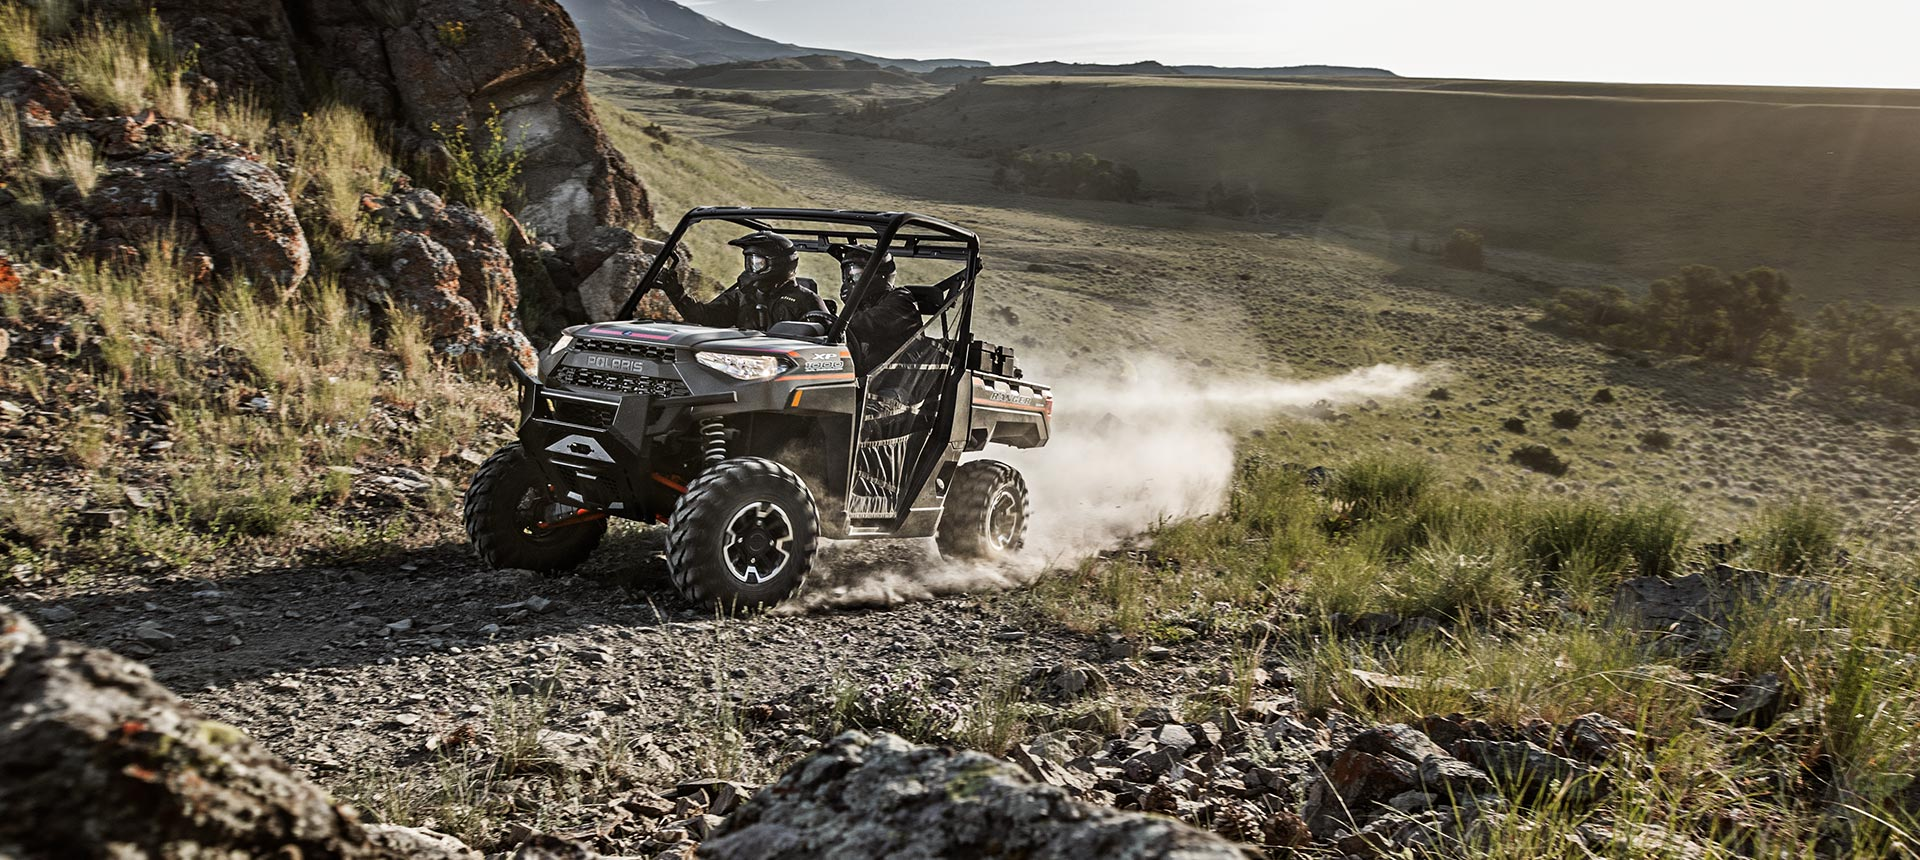 2019 Polaris Ranger XP 1000 EPS in Katy, Texas - Photo 2